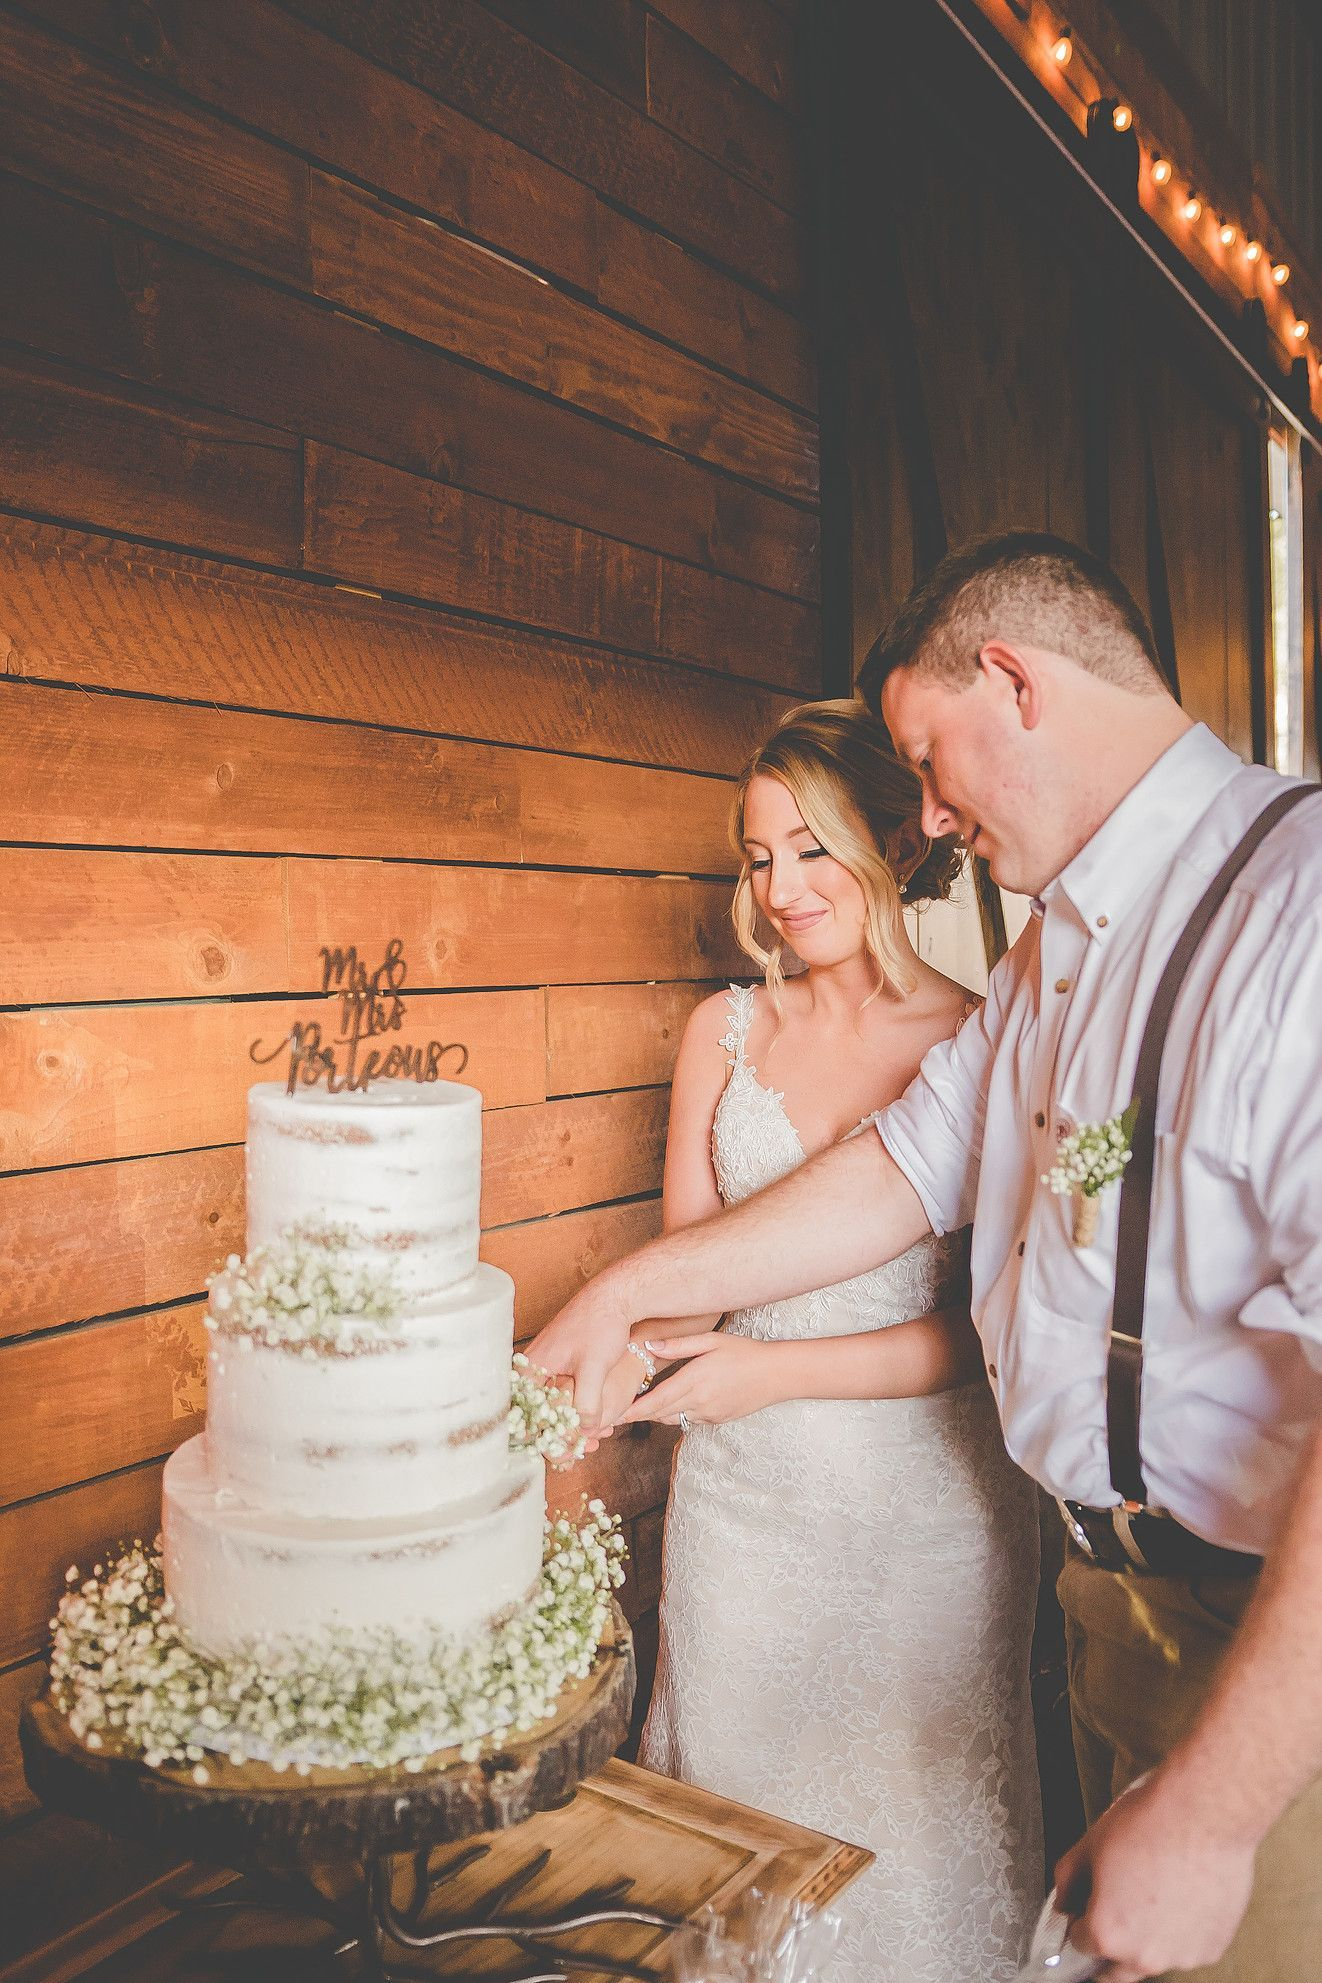 Bare wedding cake with babyus breath wooden cake topper and cut